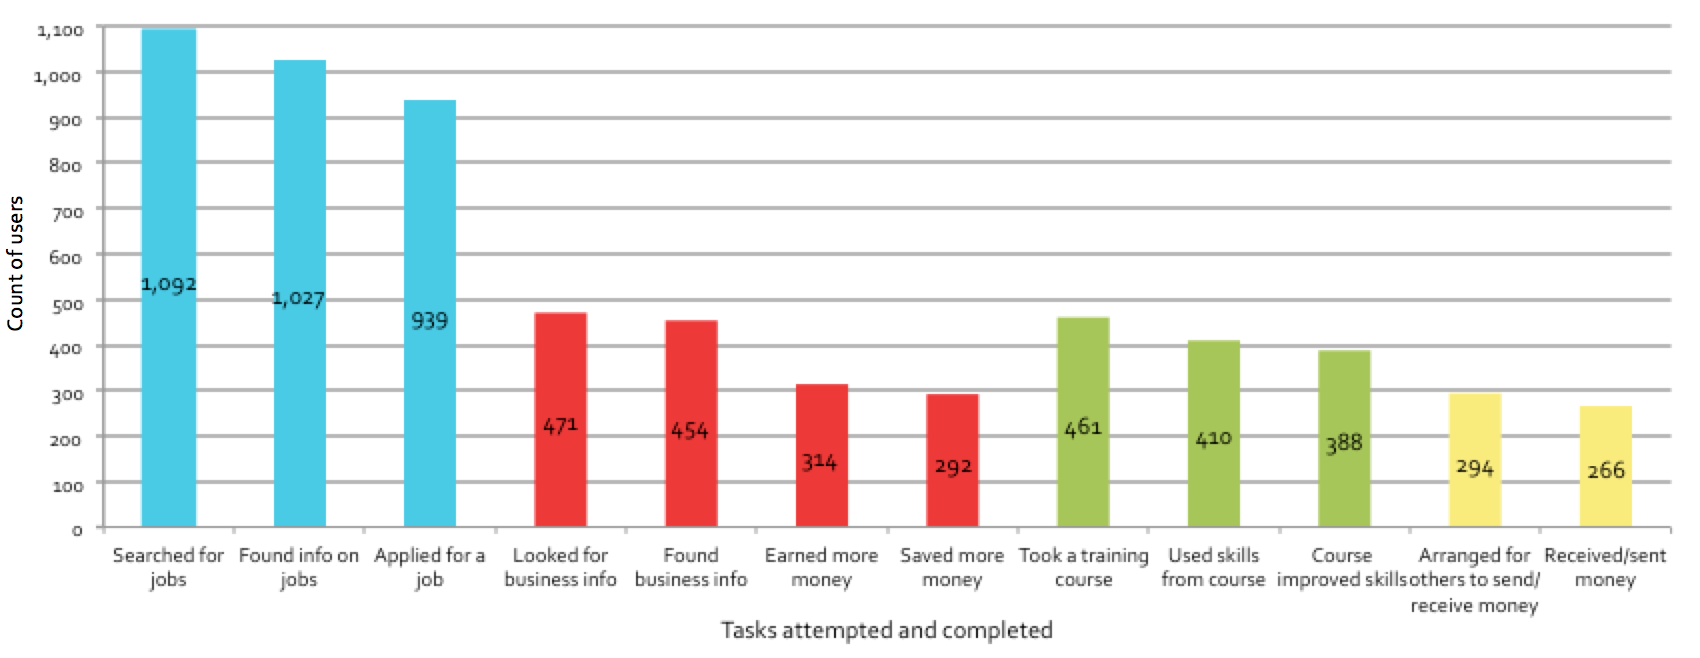 Figure 5.4: Tasks attempted and completed, employment & income domain